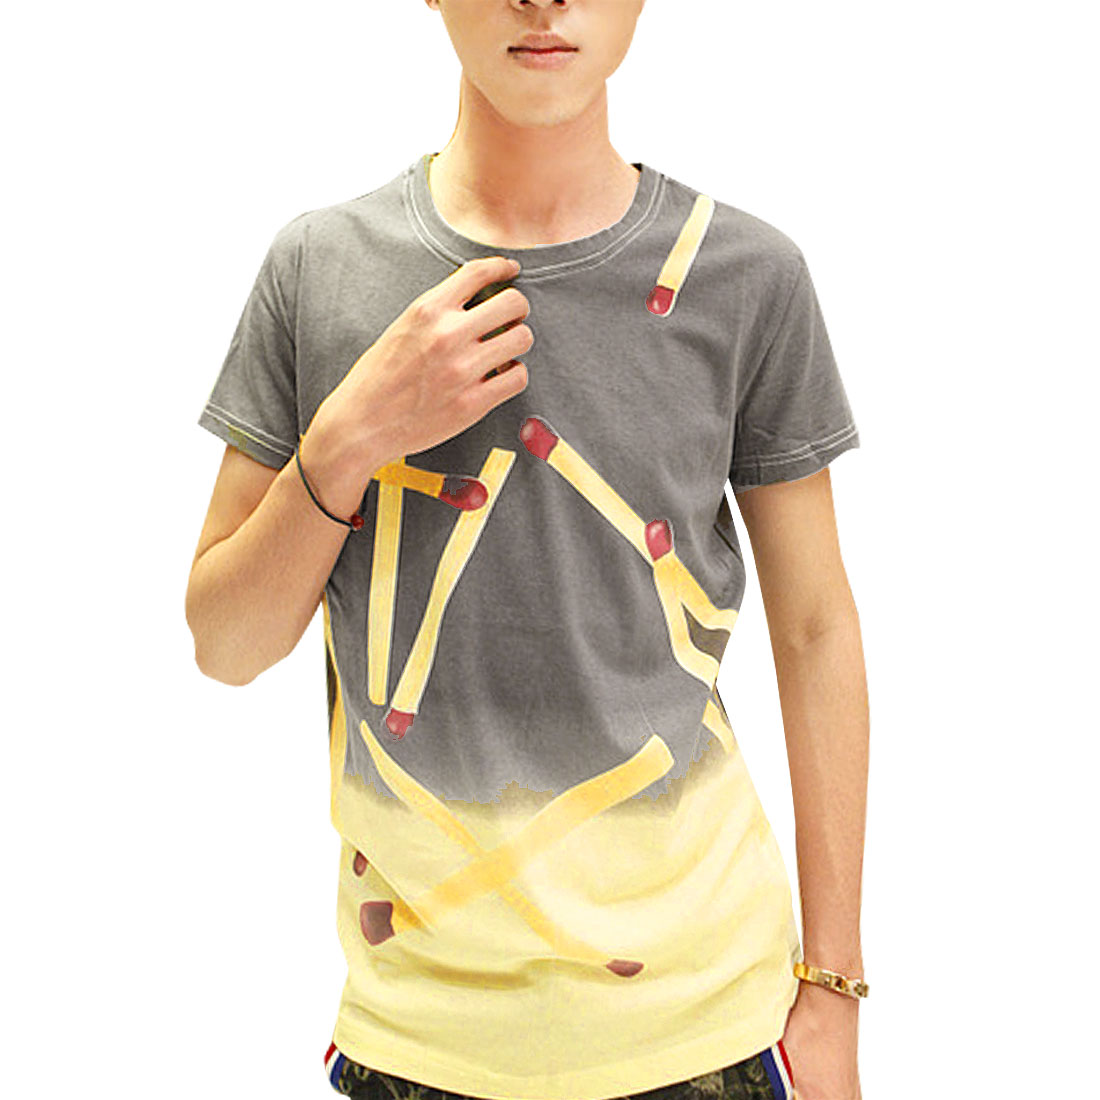 Man Round Neck Matches Print Gradient Style T-Shirt Gray Yellow S